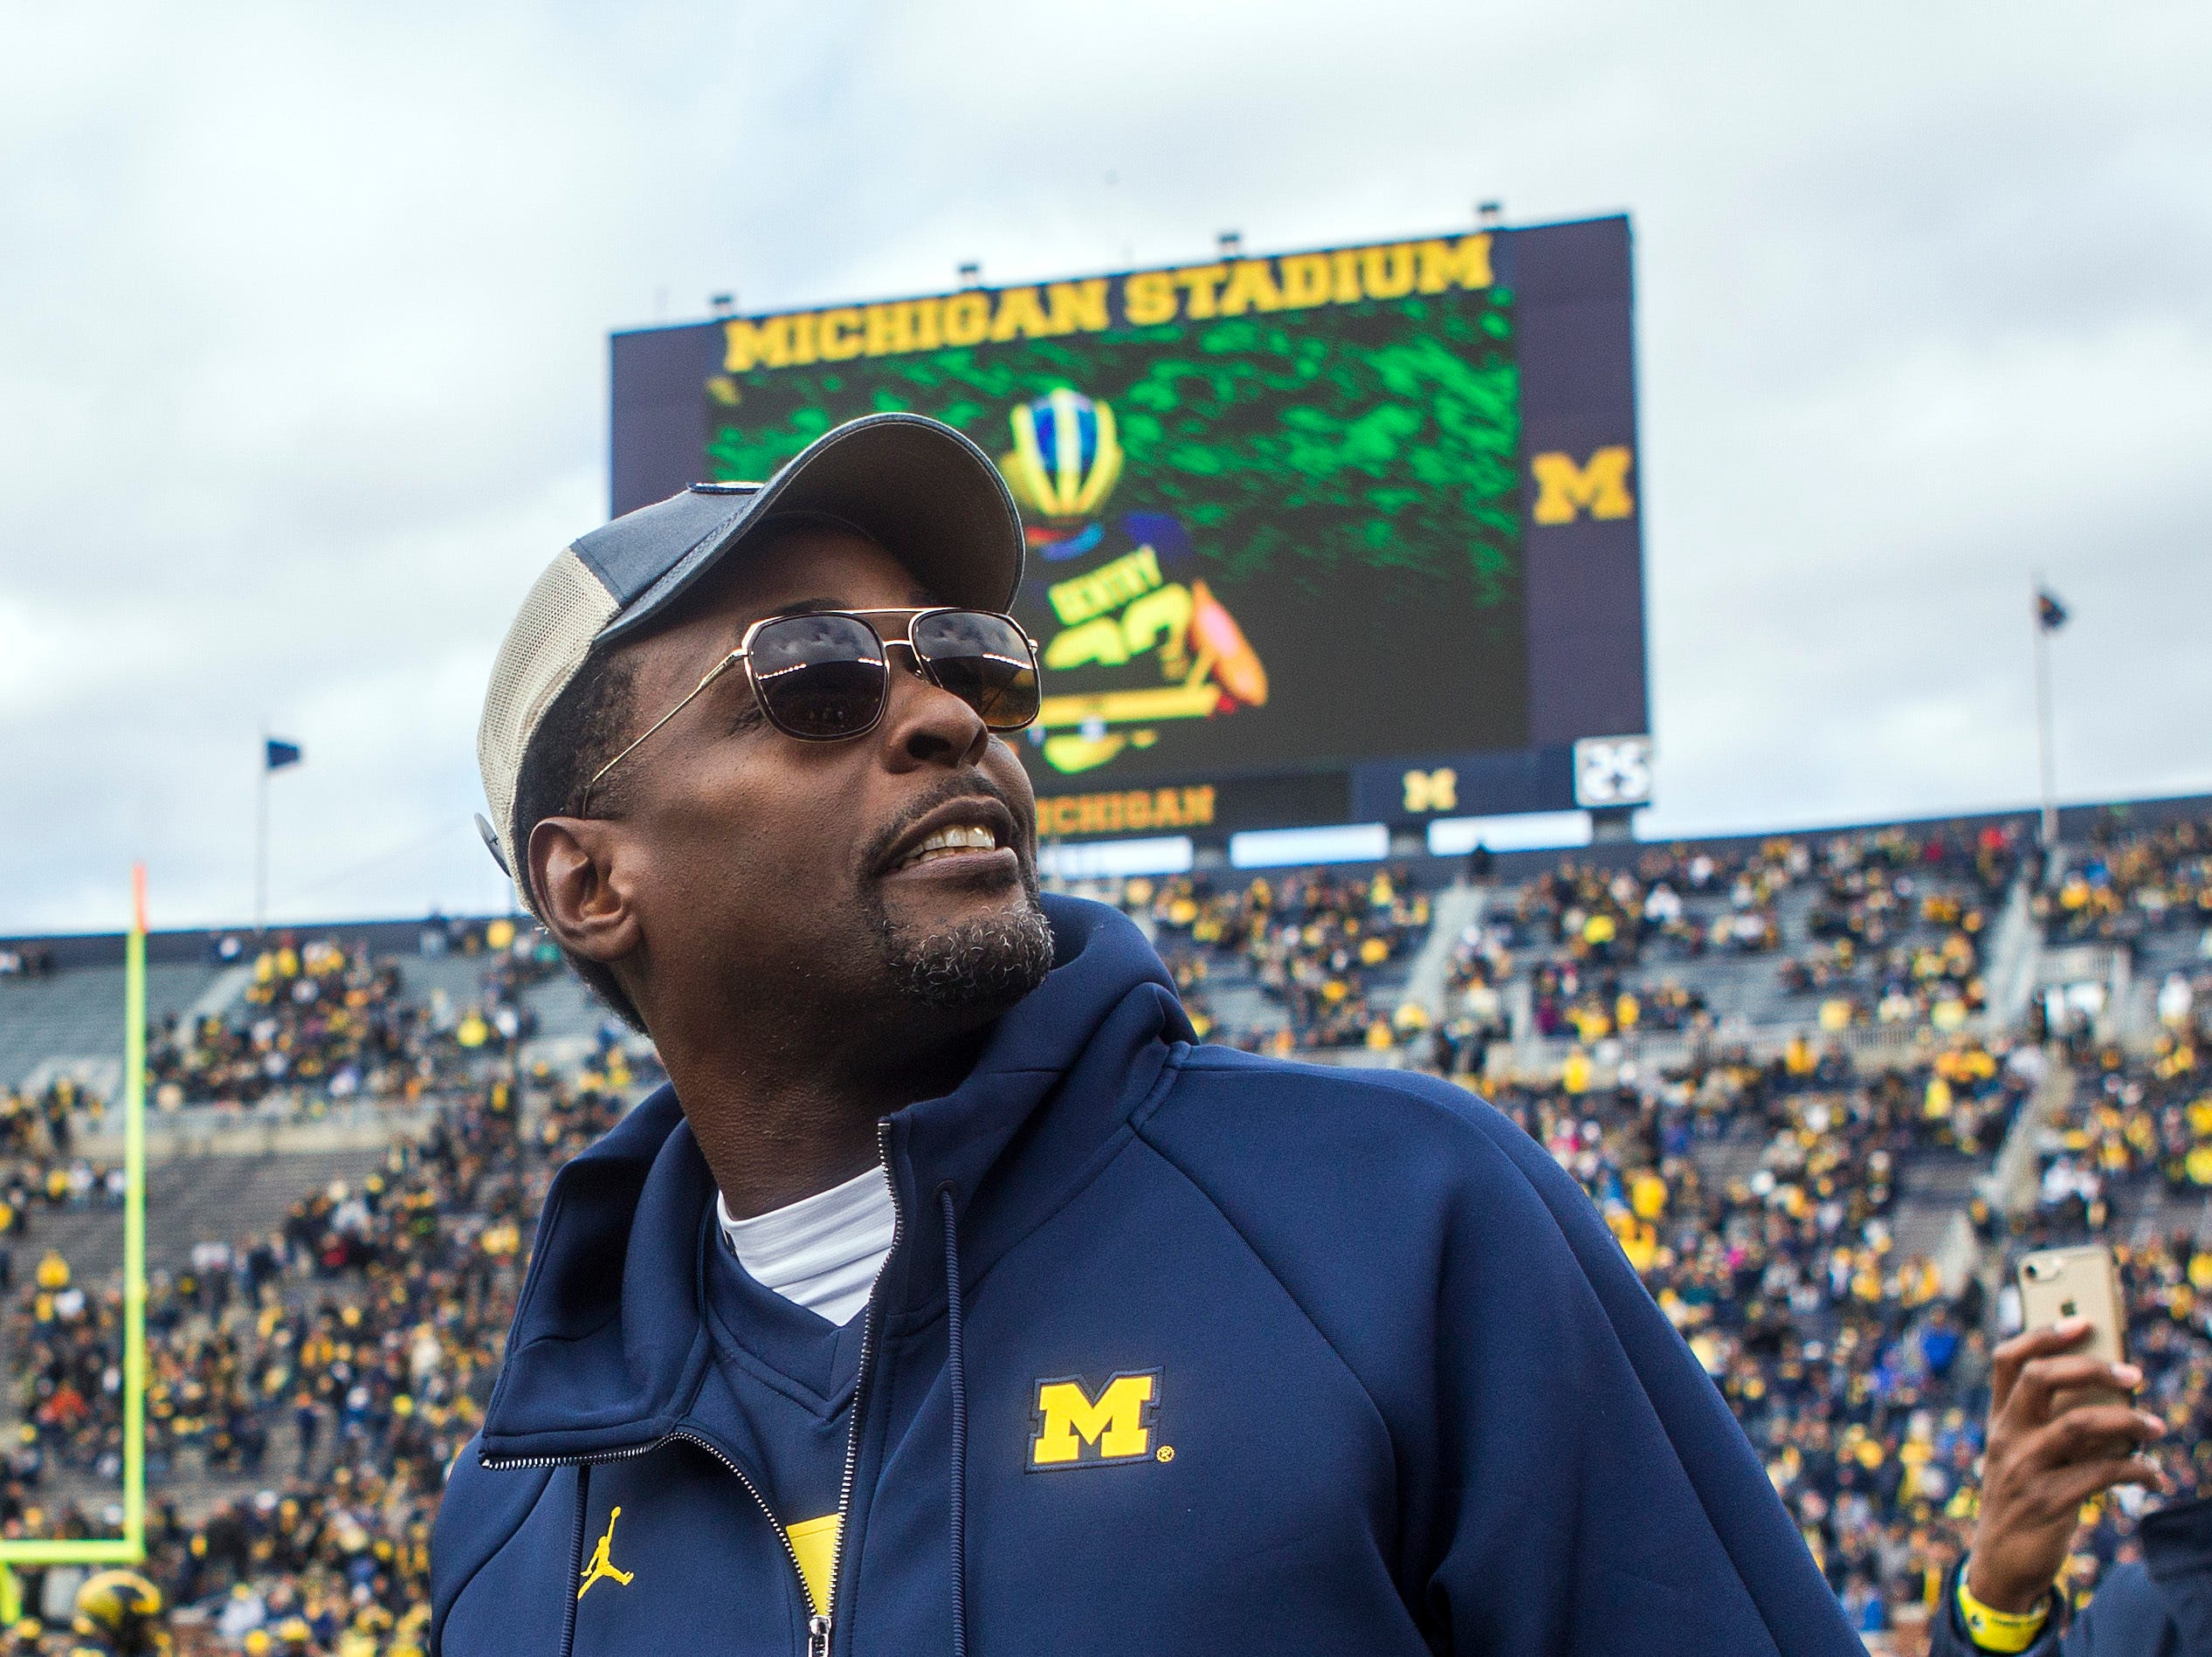 Former Michigan basketball player Chris Webber, right, on the Michigan Stadium field prior to an NCAA college football game against Penn State in Ann Arbor, Mich., Saturday, Nov. 3, 2018. Michigan is making Webber an honorary captain for the game. (AP Photo/Tony Ding)